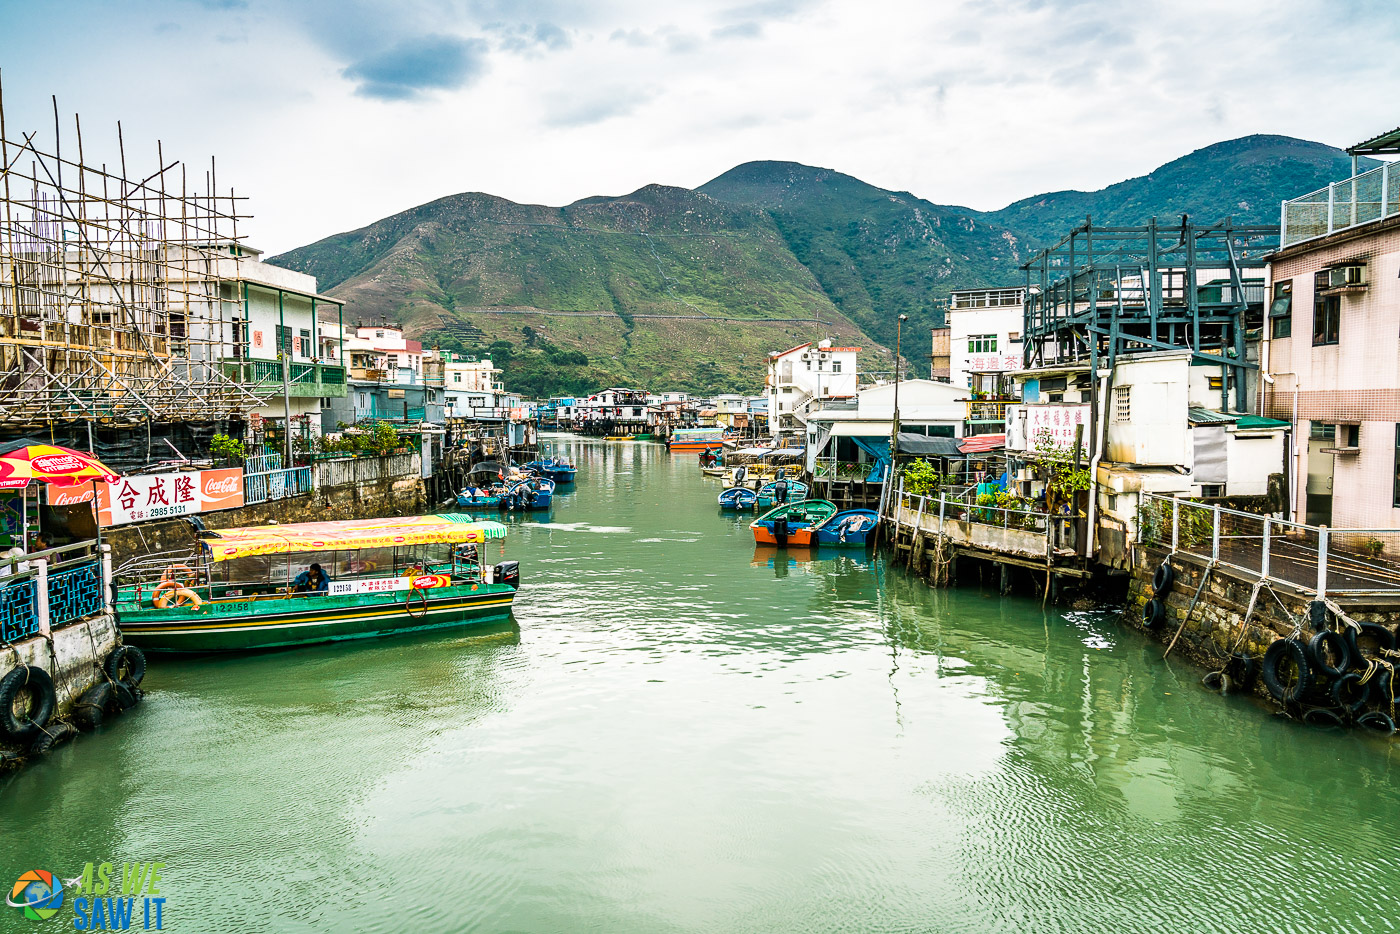 waterfront village made up of mostly Hakka people in Hong Hong